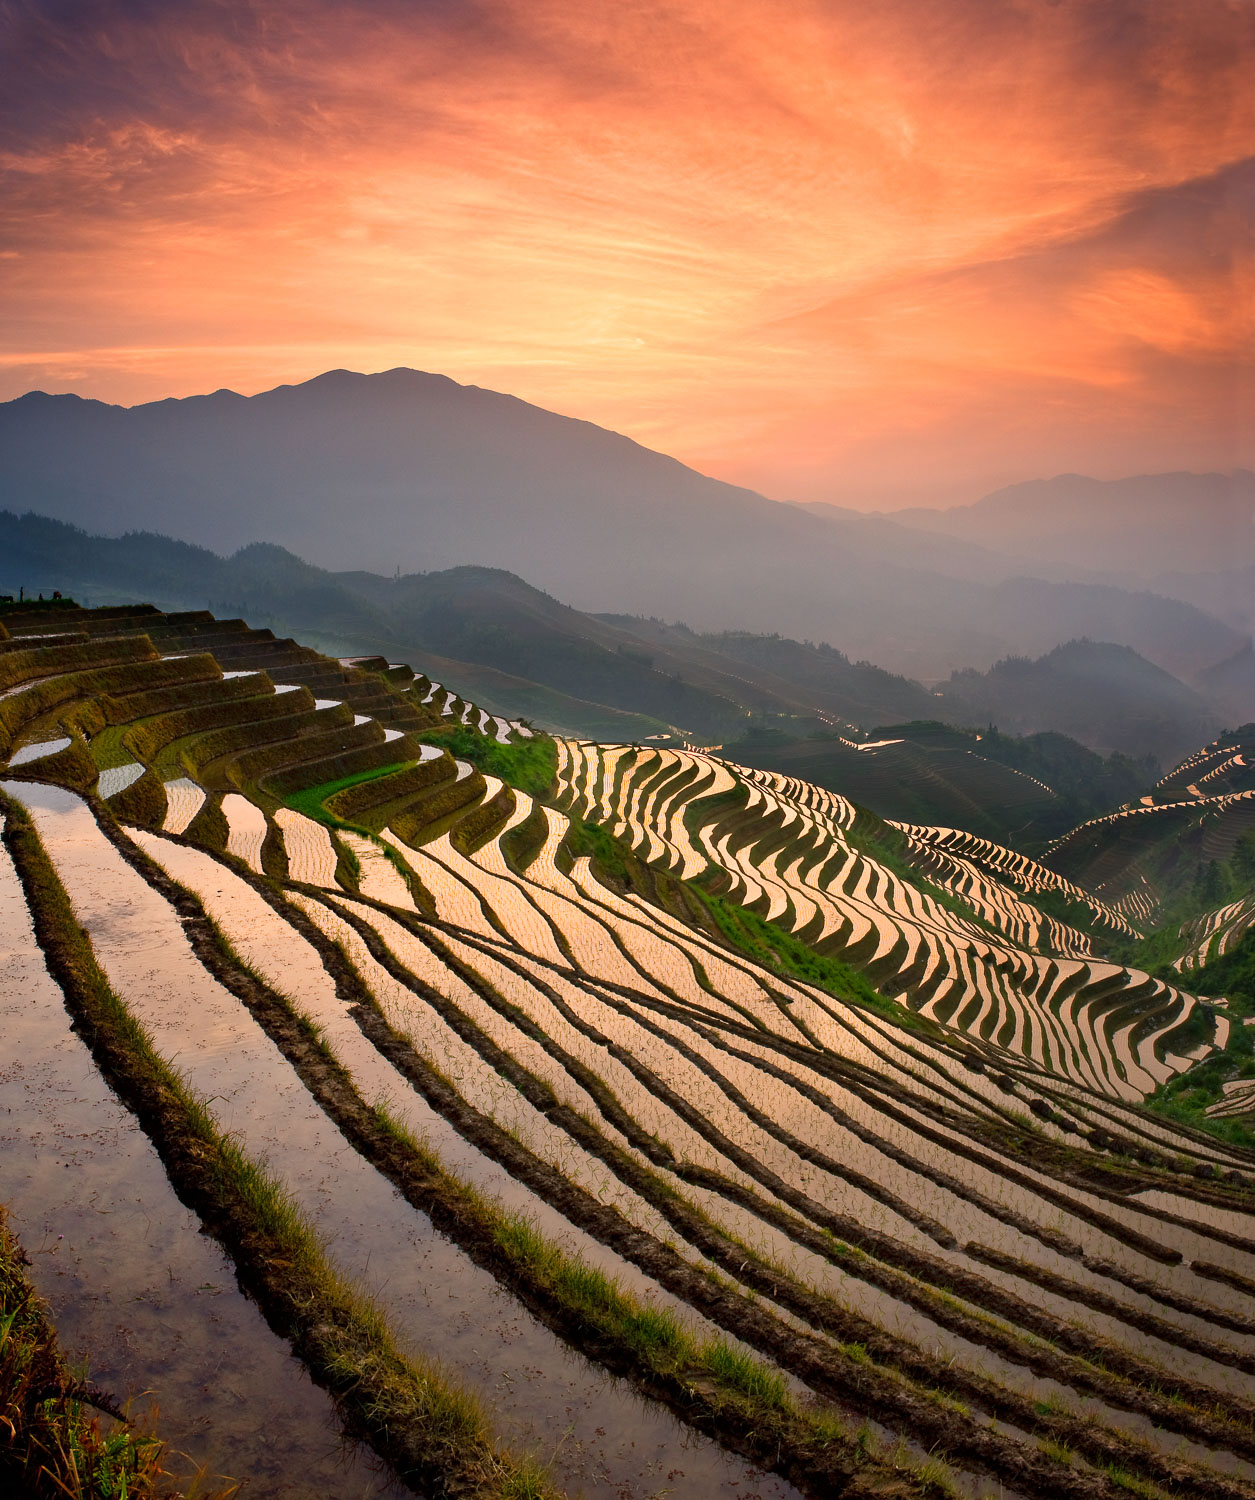 """Reptilian Sunrise"", Dragon's Backbone( Longji) Rice Terrace nea"